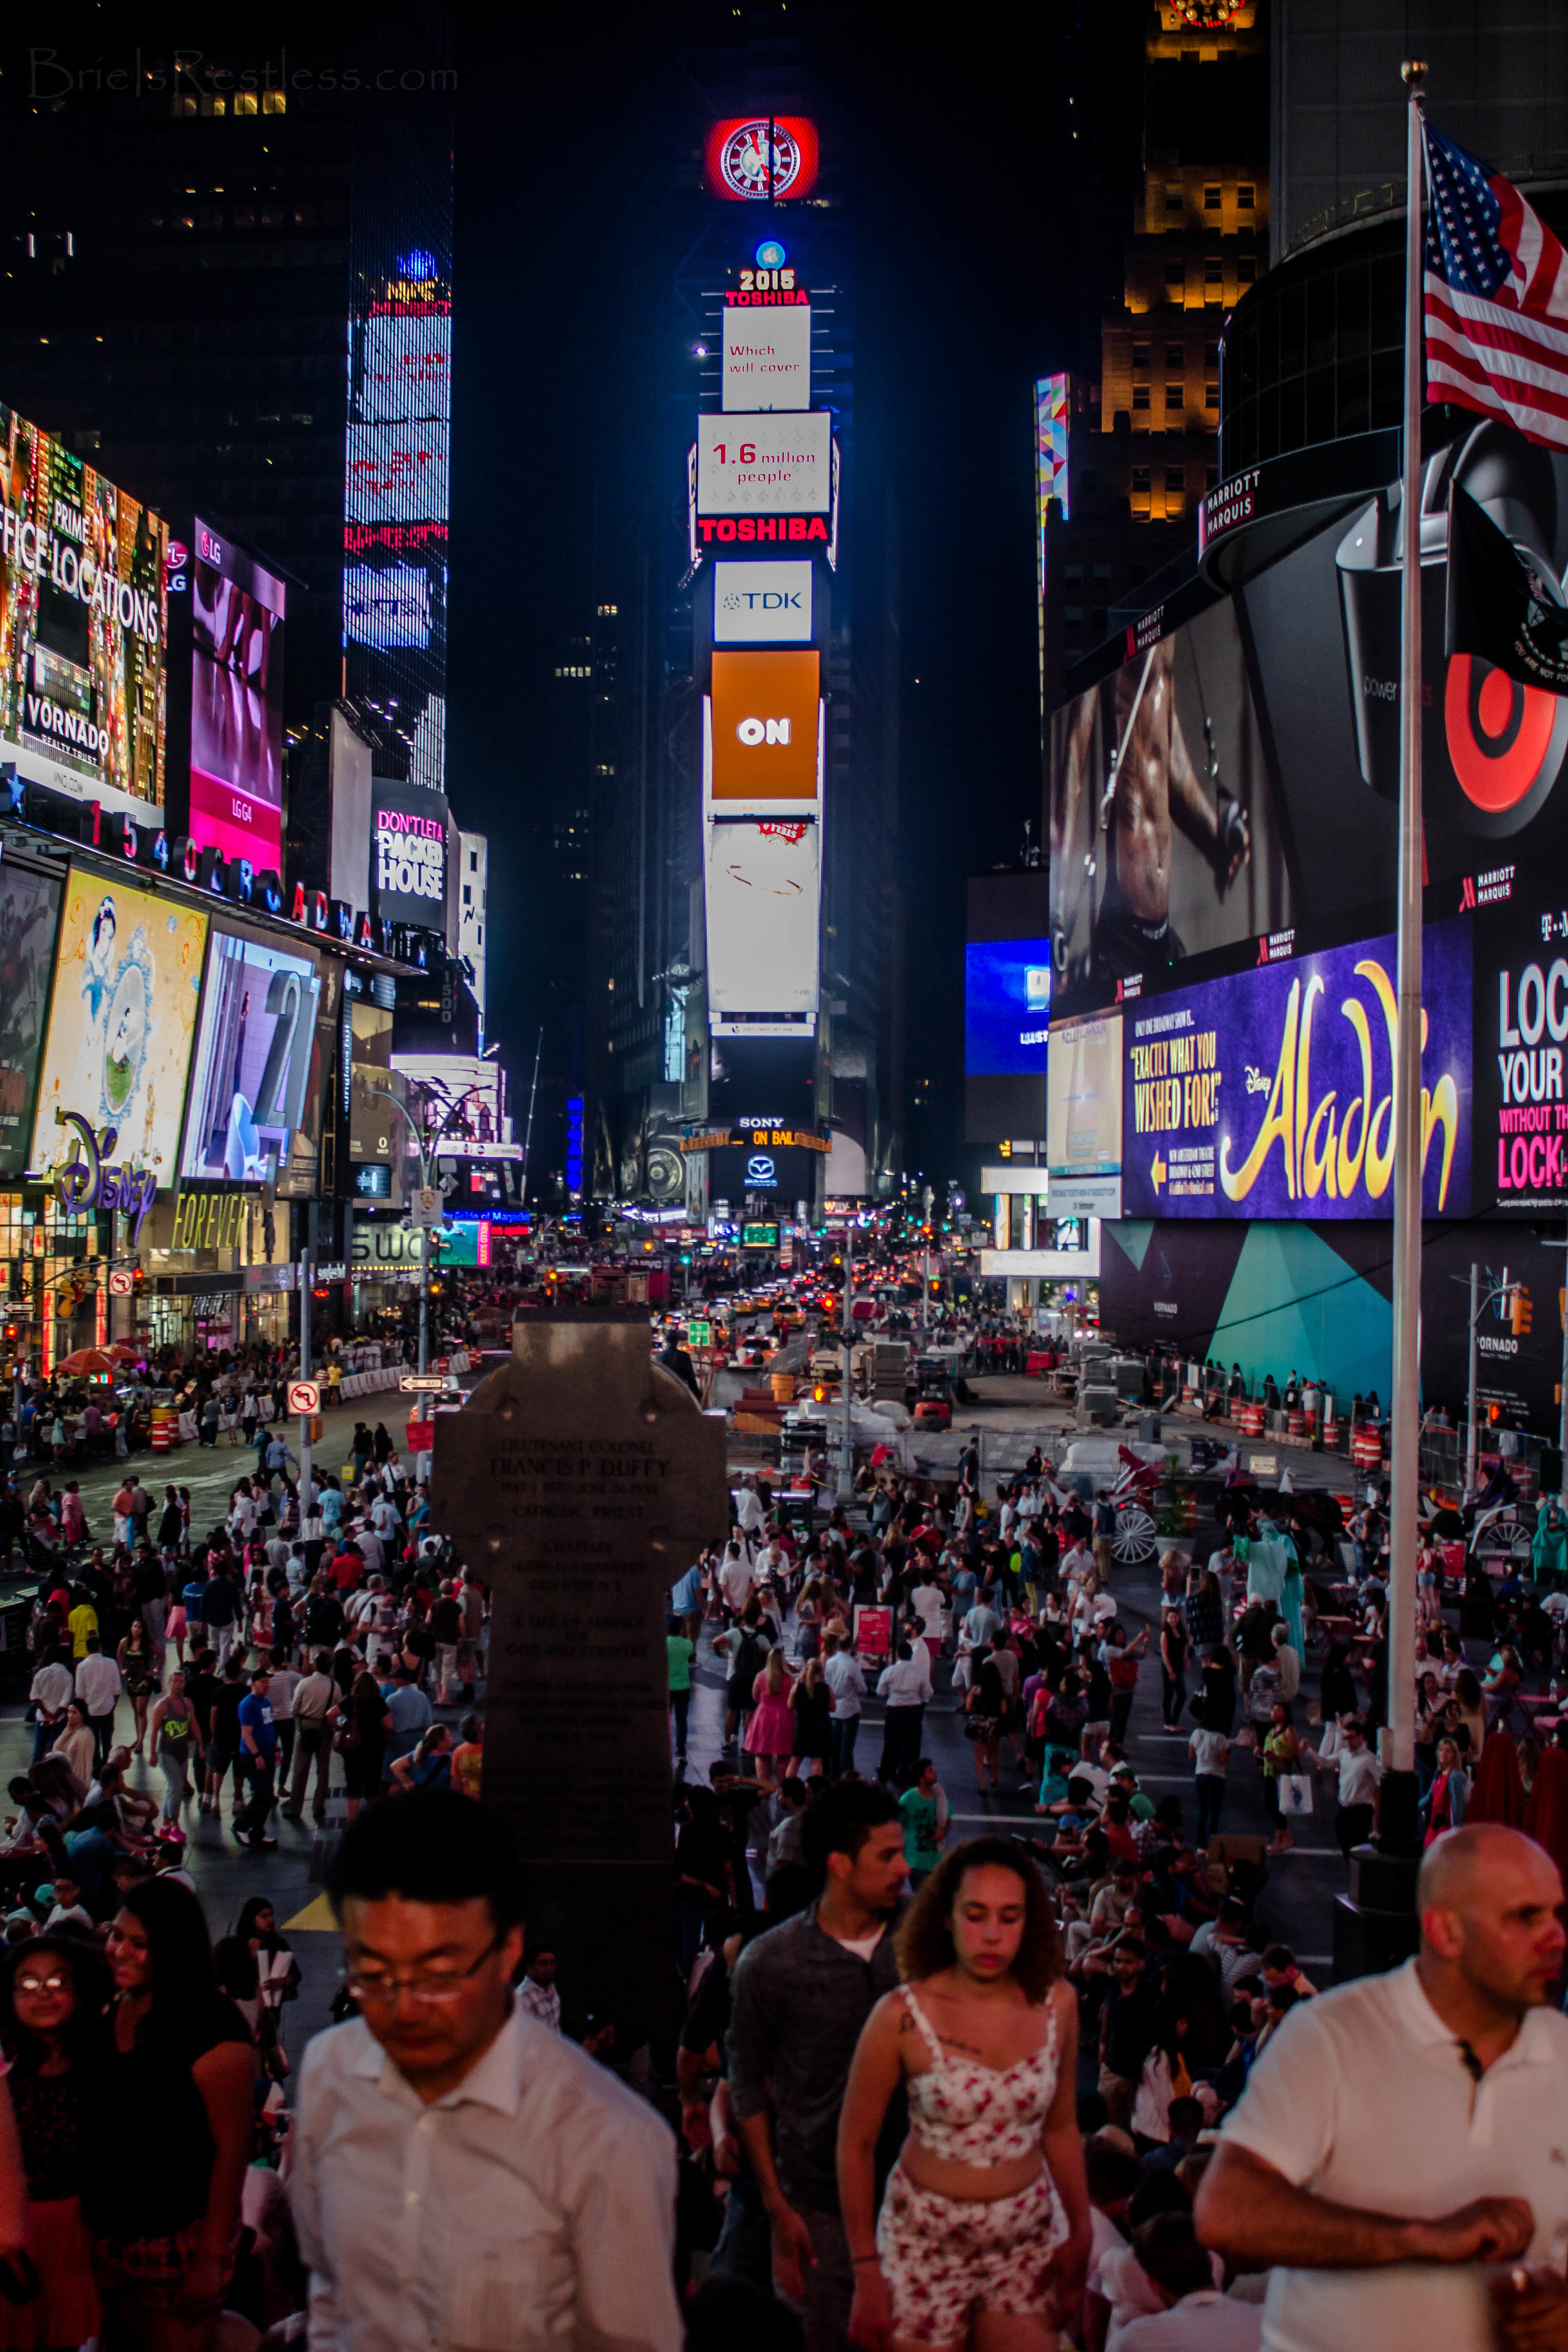 Time Square Crowd - NYC.jpg